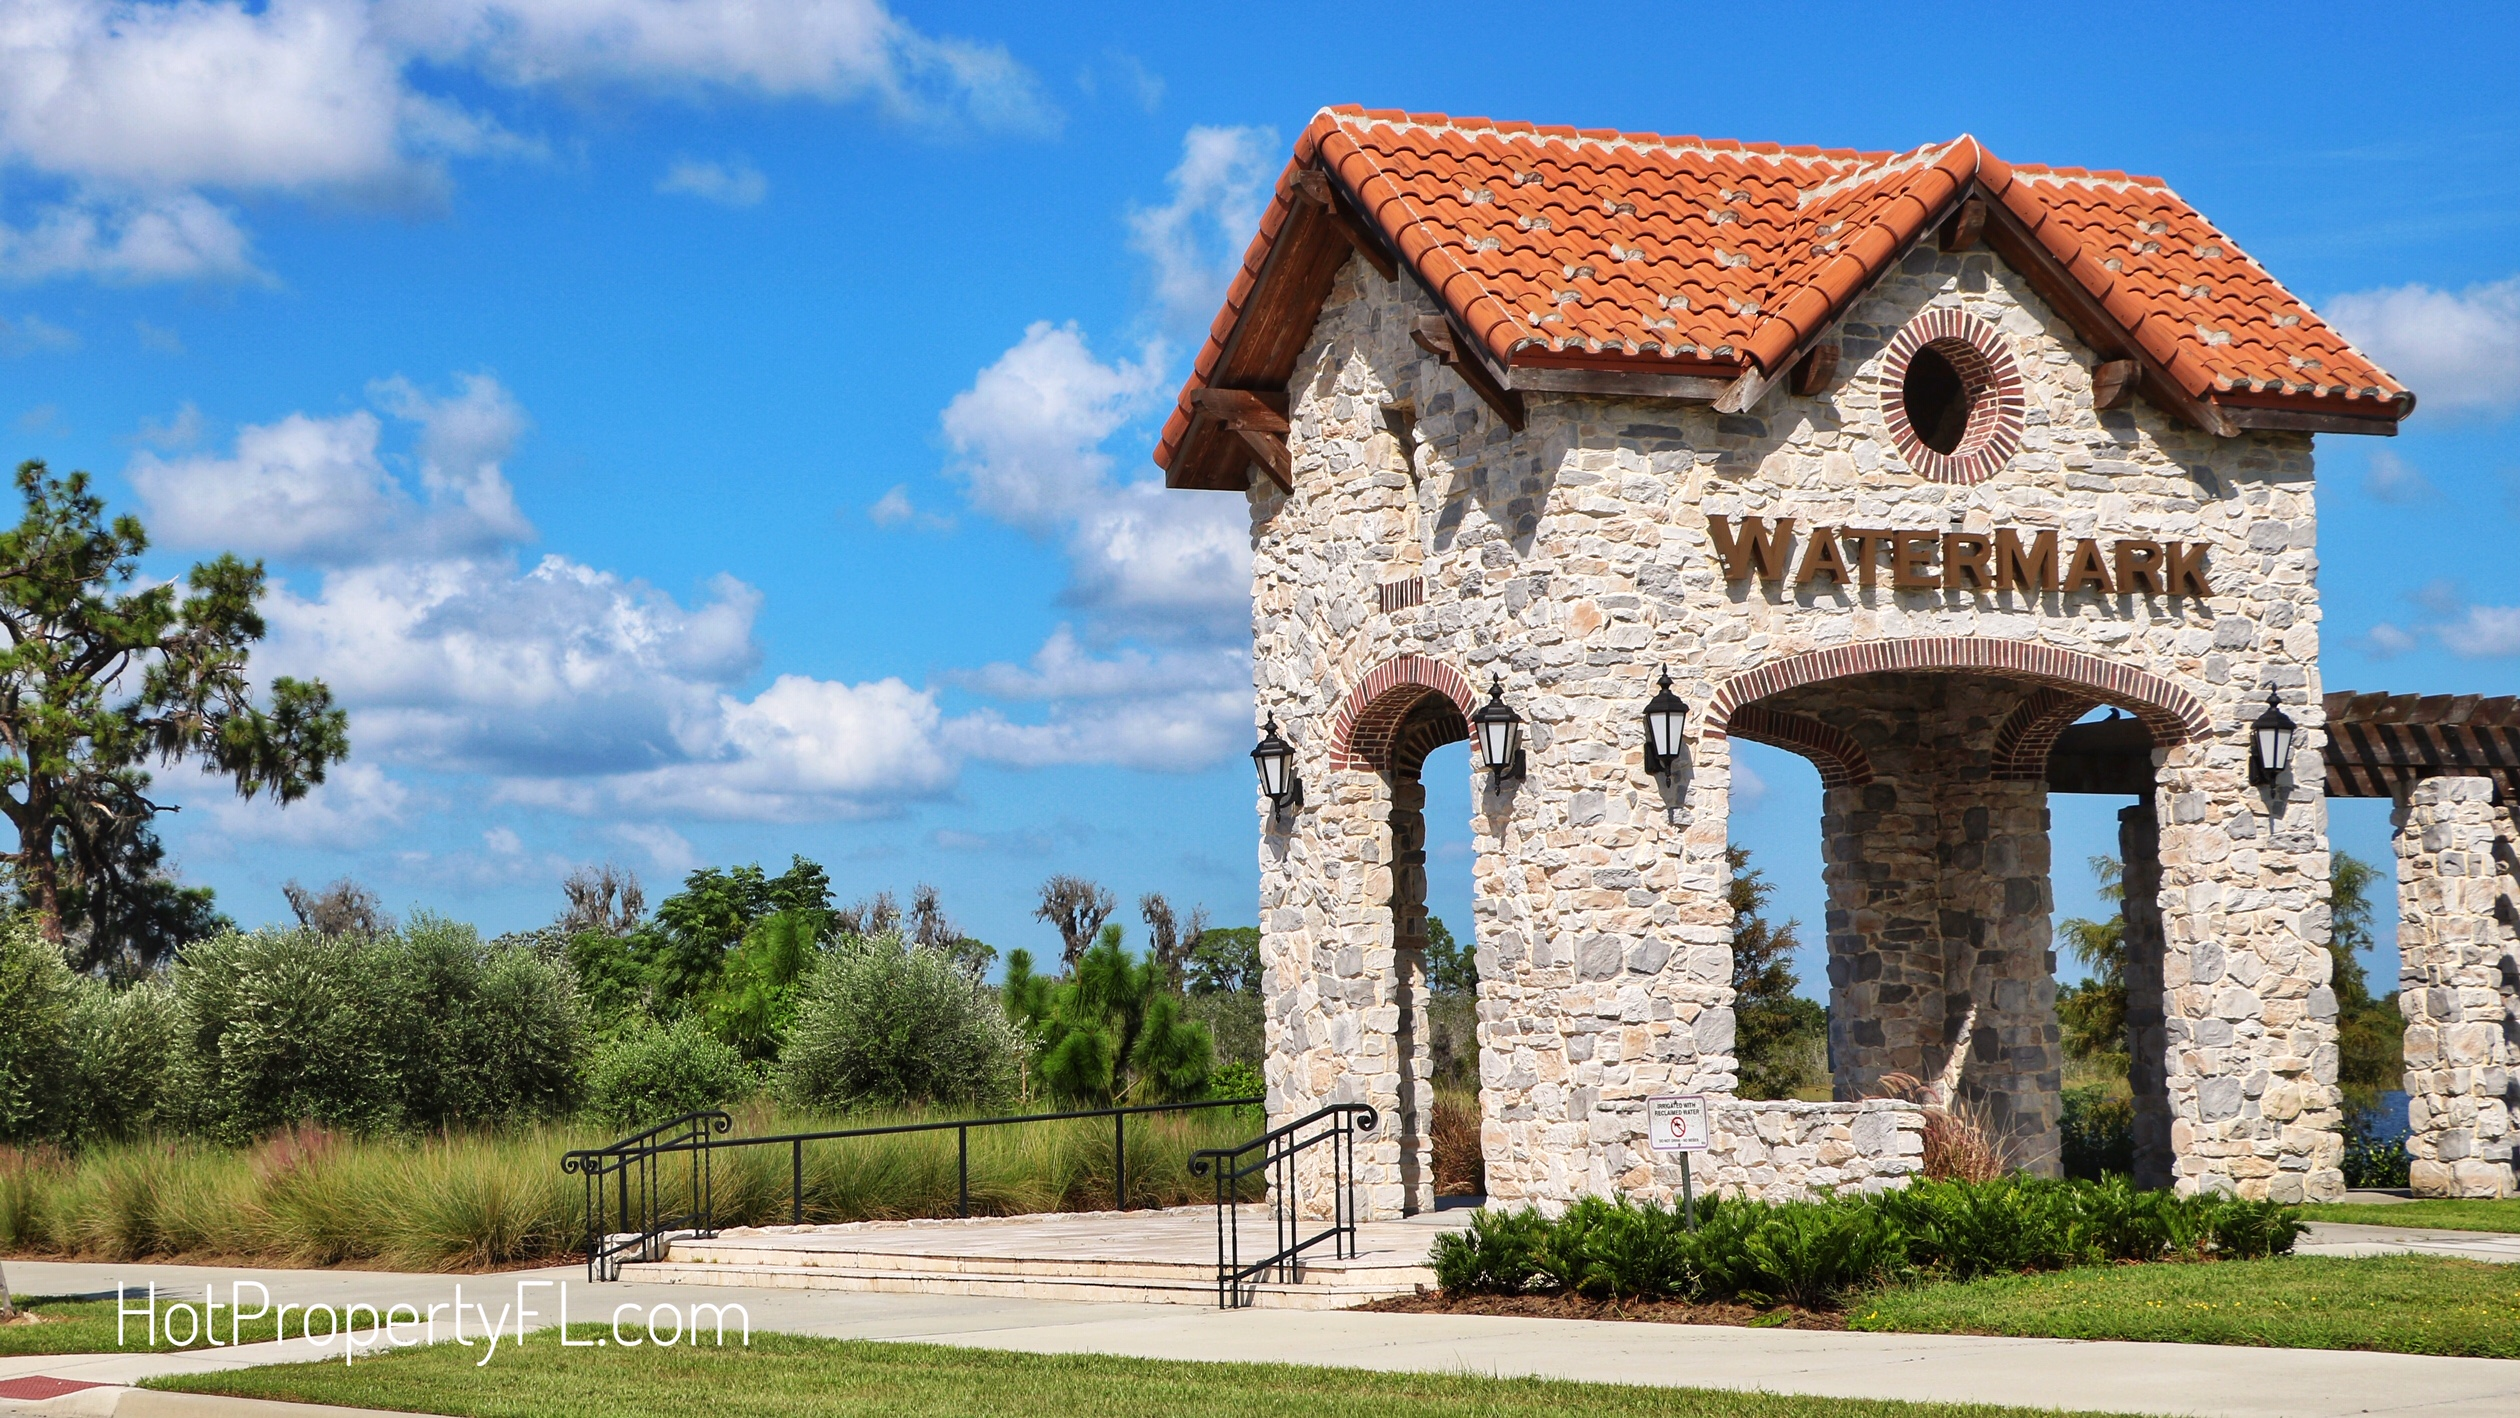 Homes for sale in Watermark, Winter Garden Florida